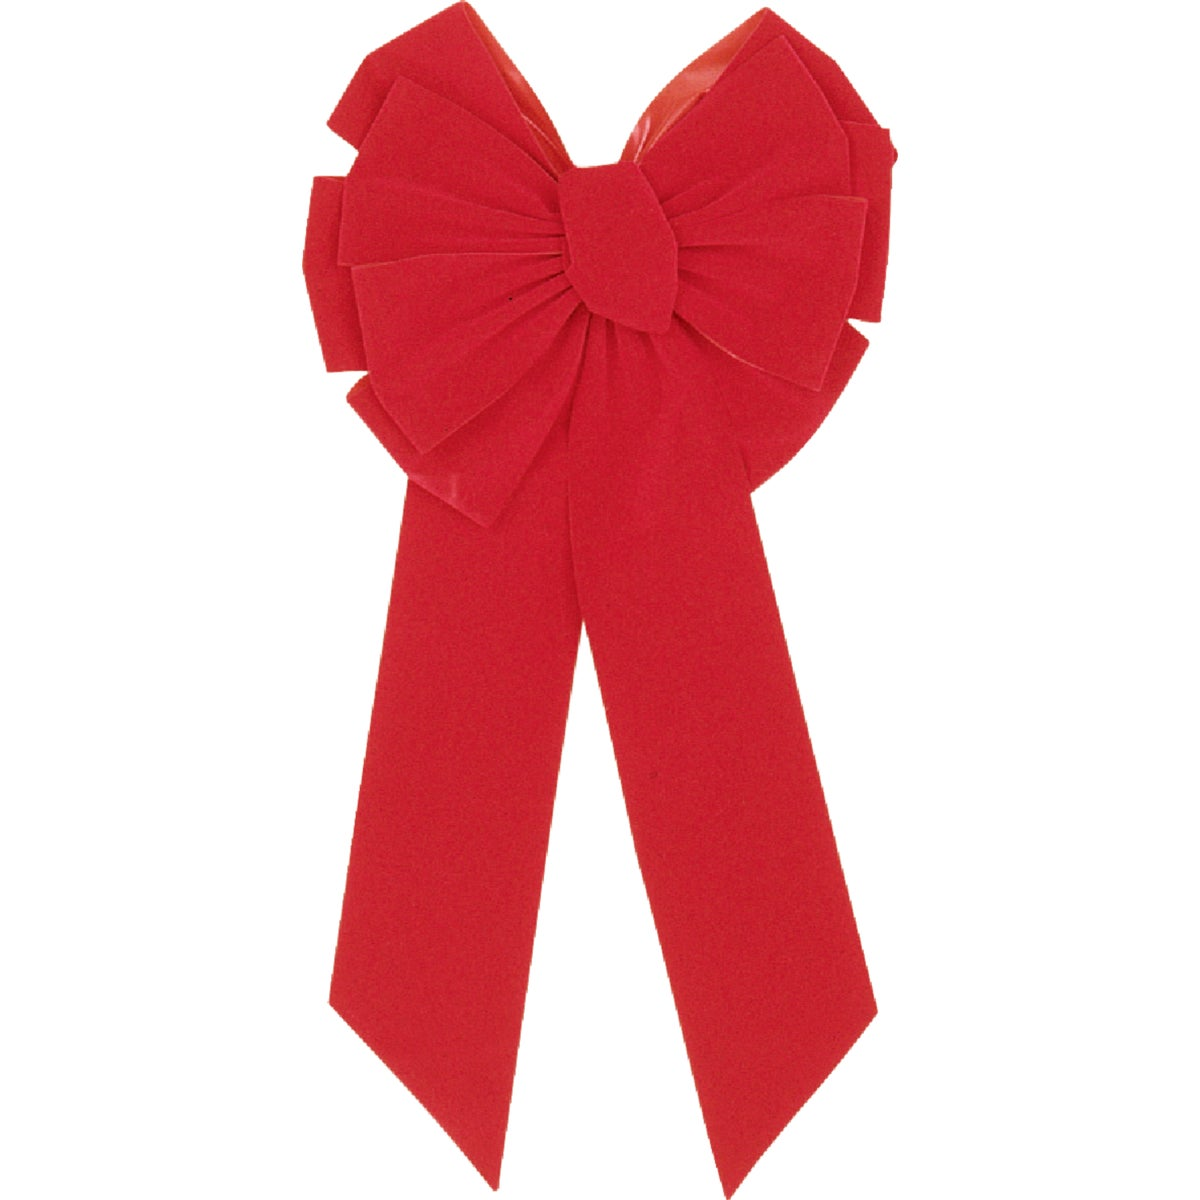 14X28 12-LOOP RED BOW